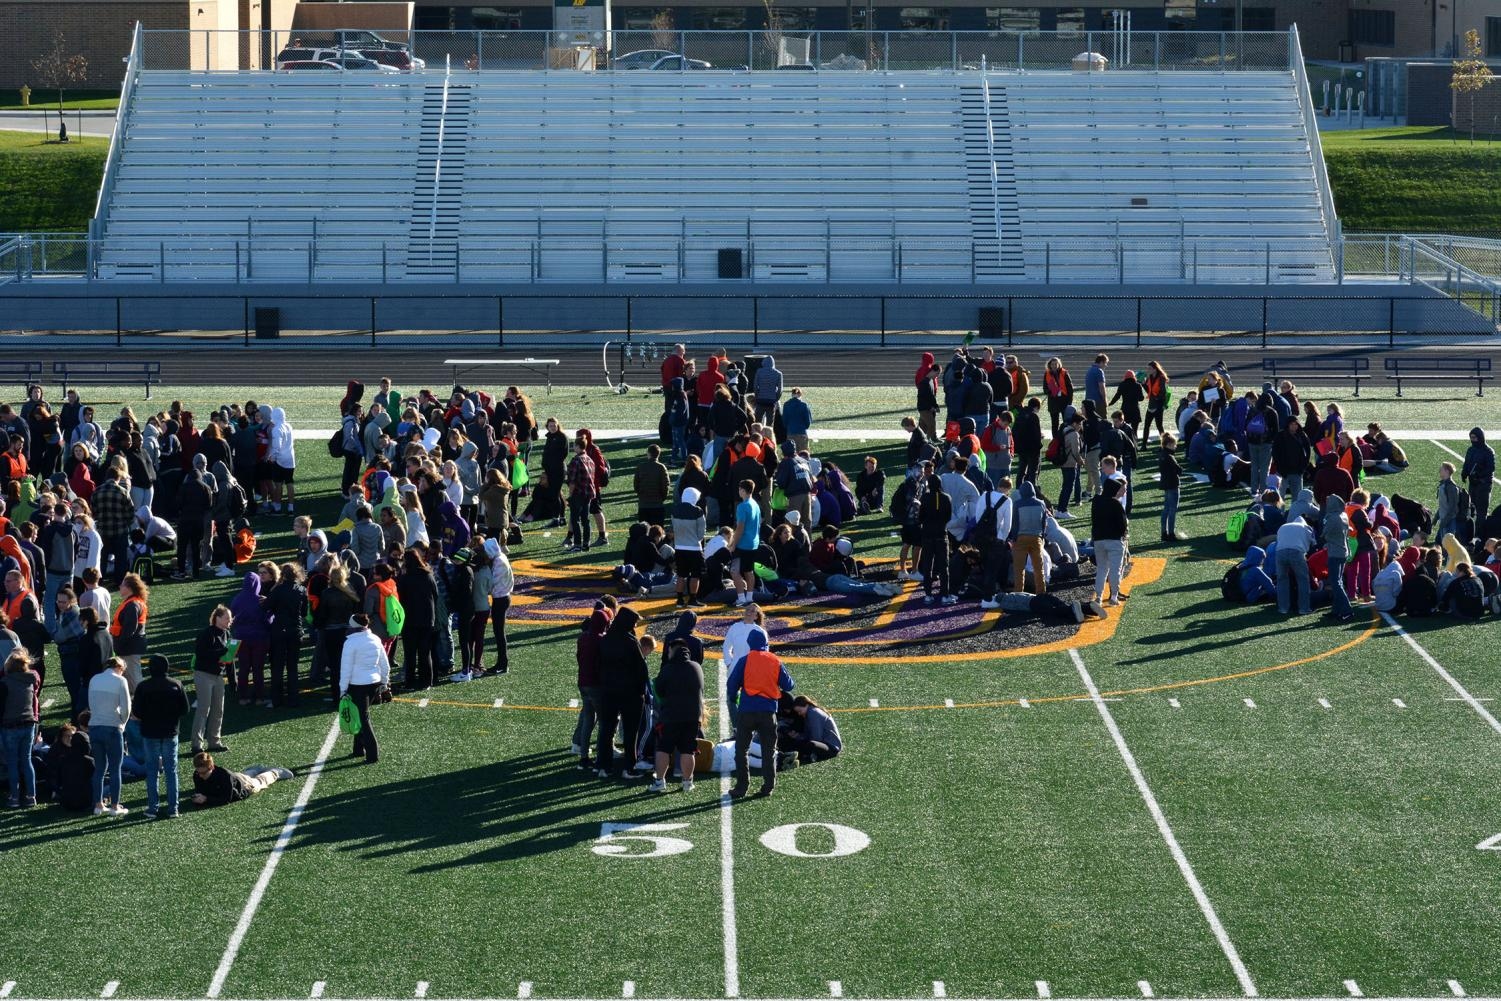 Students huddle during the fire drill. The drill was conducted during 40 degree weather with 25 miles-per-hour winds.